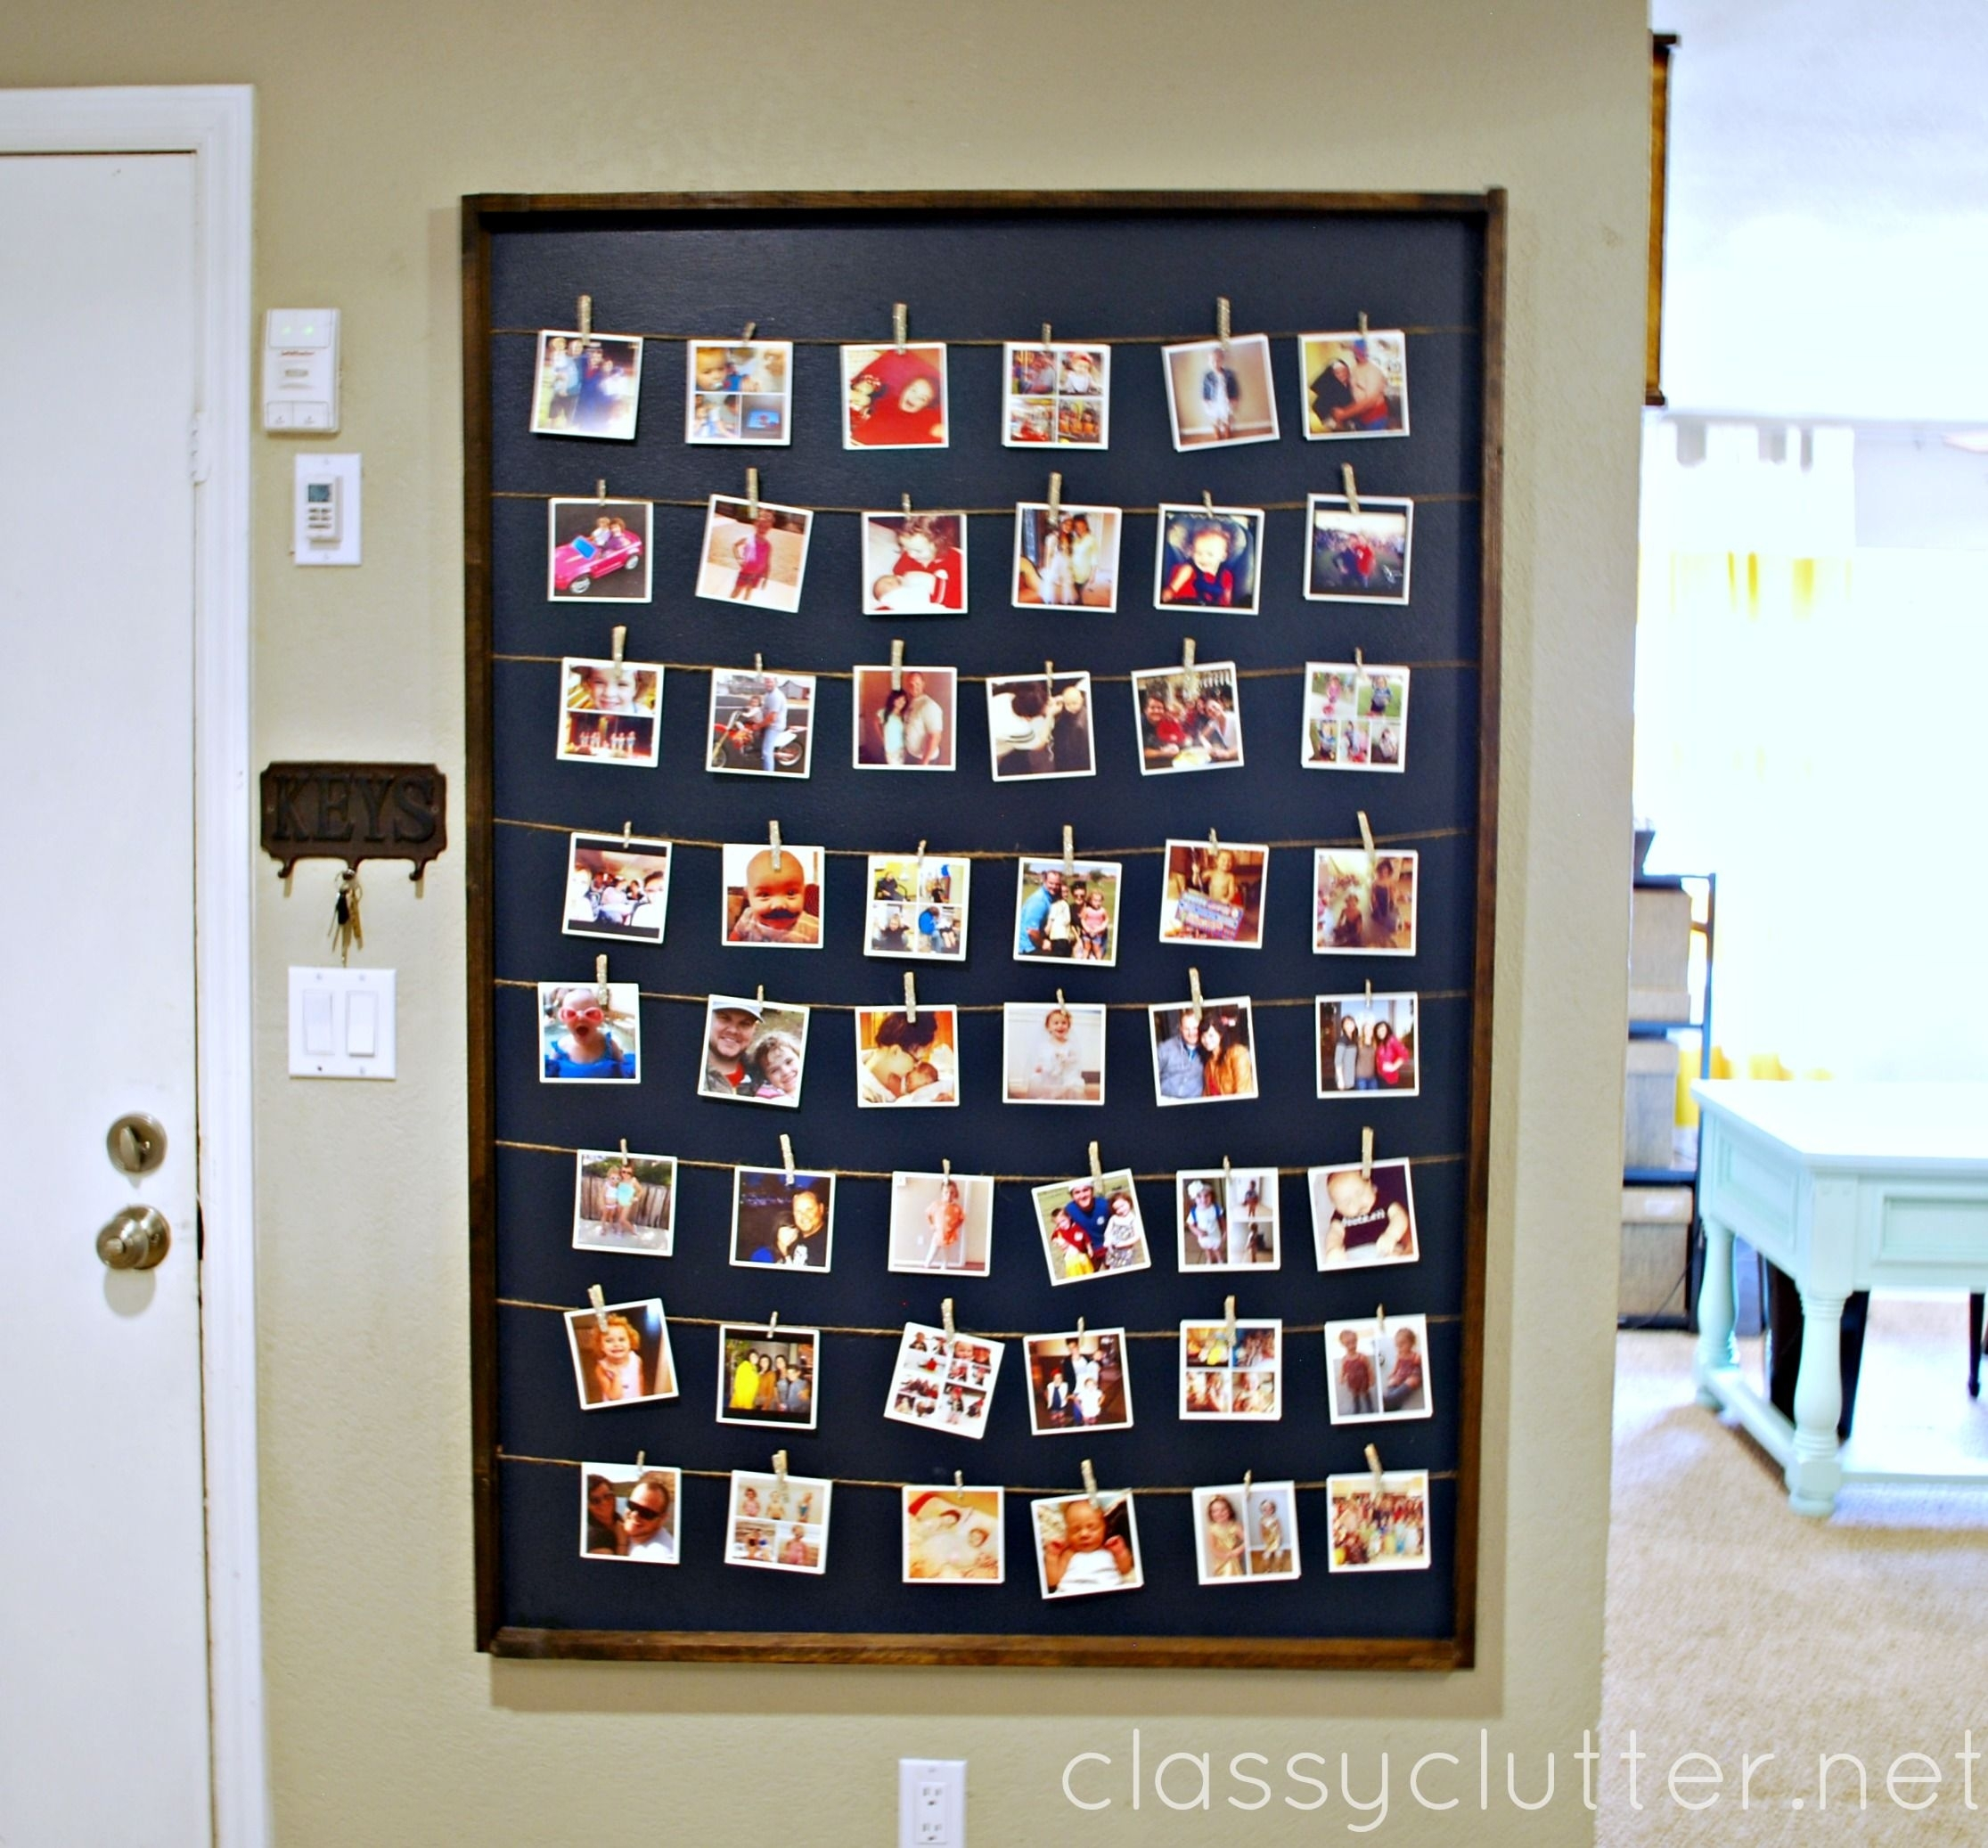 Diy Instagram Photo Wall Display | Recruiting Volunteers | Pinterest intended for Instagram Wall Art (Image 7 of 20)